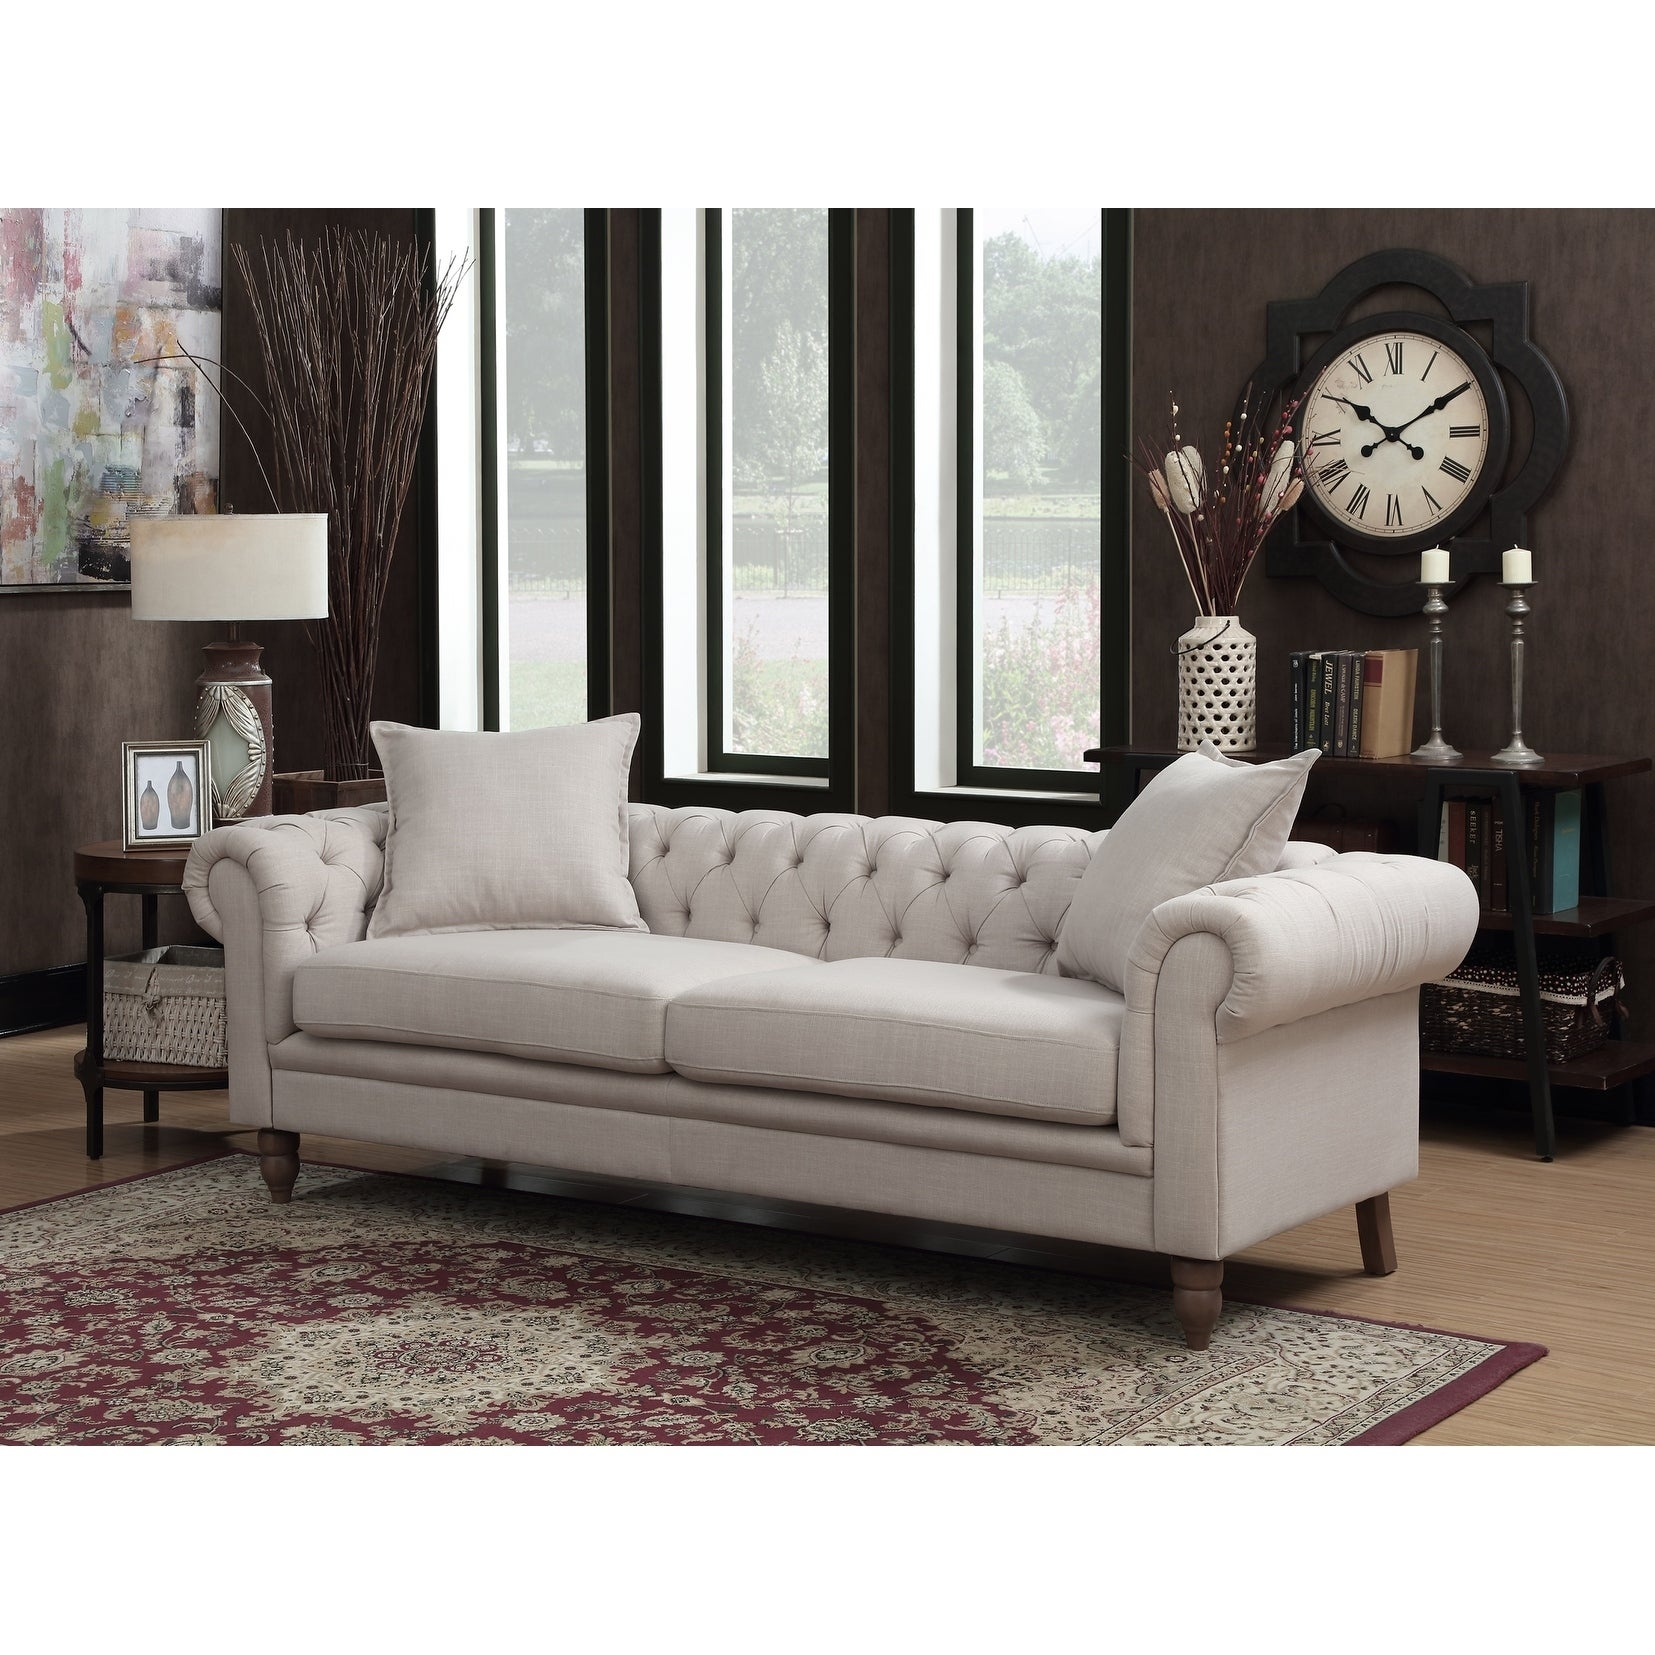 Juliet Contemporary Grey Upholstered Tufted Living Room Chesterfield Sofa On Sale Overstock 23614806